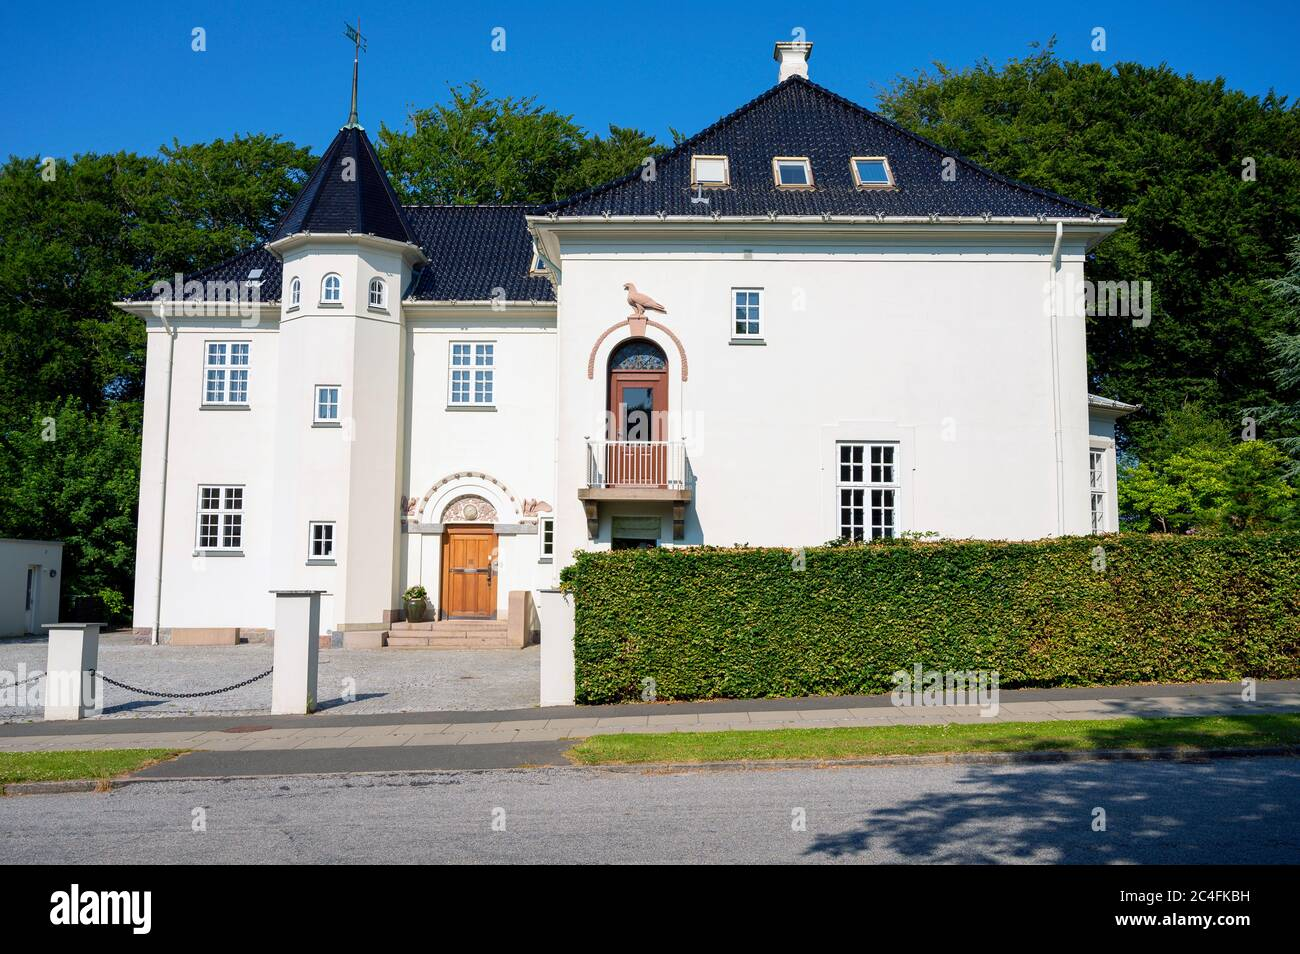 Big White House Mansion With Black Roof Stock Photo Alamy